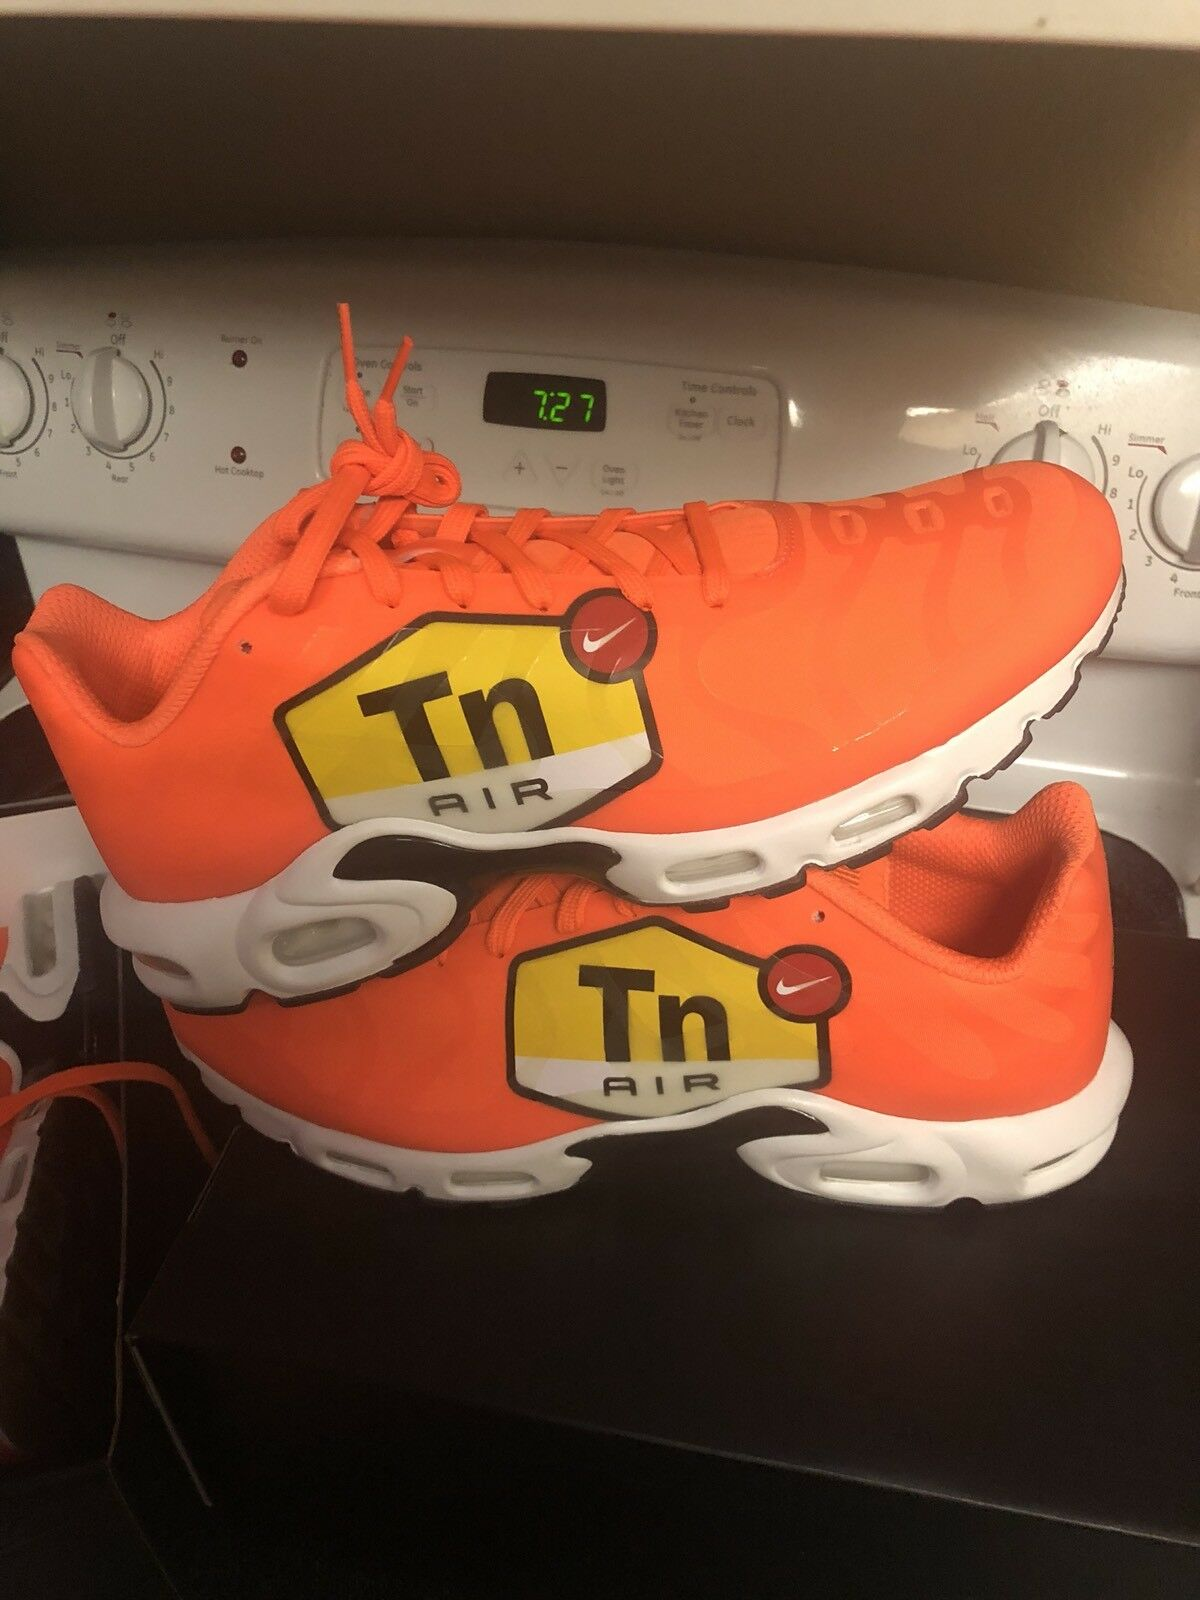 Nike Air Max Plus TN Tuned 1 NS GPX Big Logo Orange AJ7181-800 Sz 13 97 98 1 95